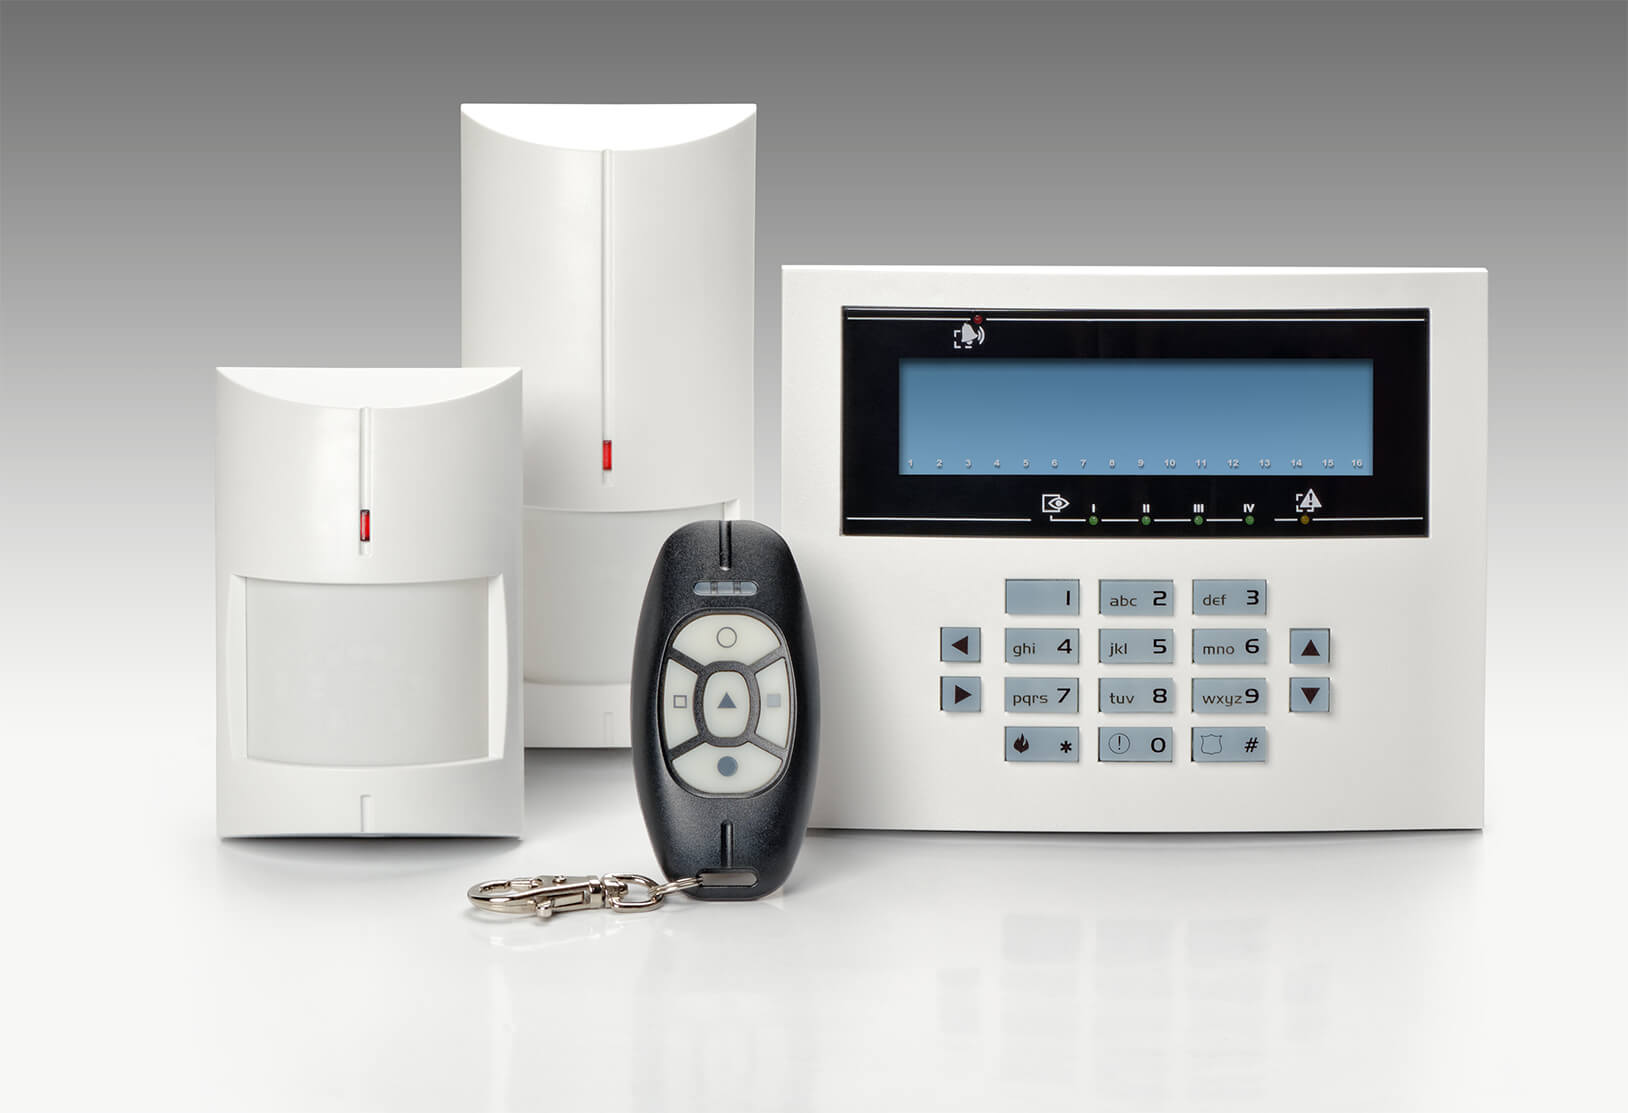 Business & Residential NACOSS Approved Burglar Alarms In Stoke Newington N4 - Local Stoke Newington N4 security company.Call 02078872244 - Dedicated to Safety & Security. Companies, shops and homes ..